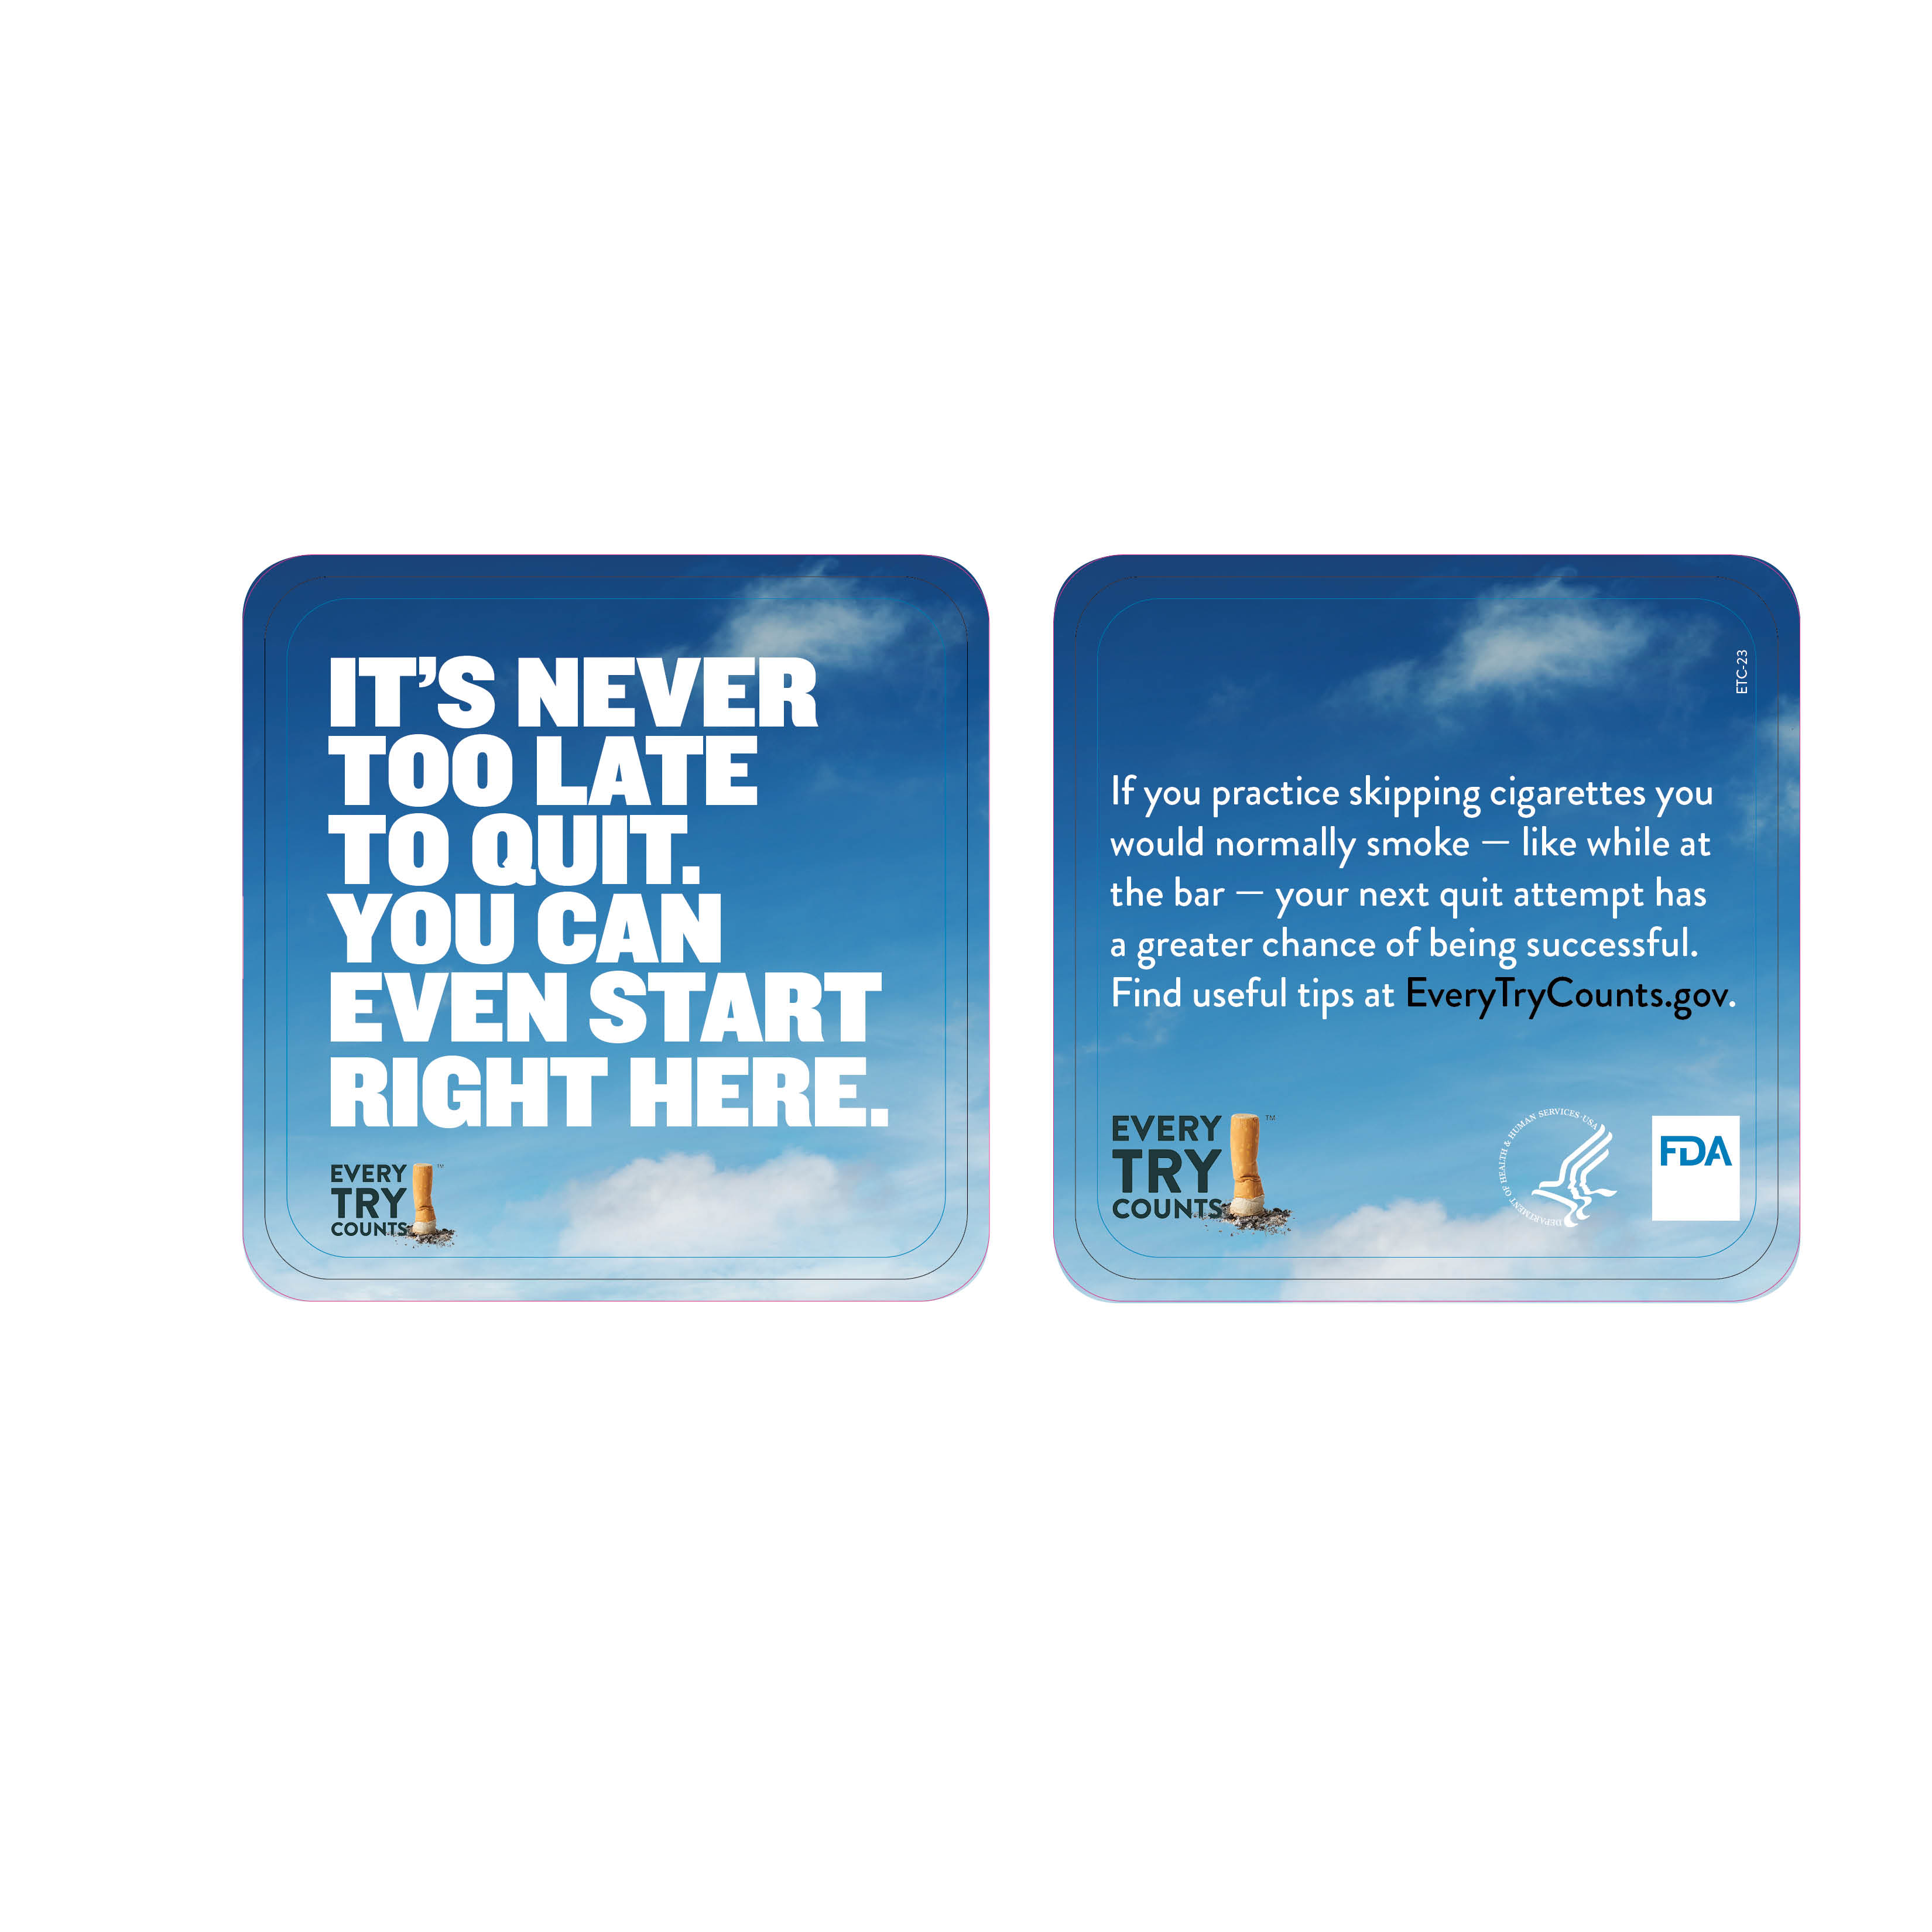 This 4x4 coaster informs adult smokers that taking small steps to quit helps them to build skills and have a greater chance of being successful on their next quit attempt.